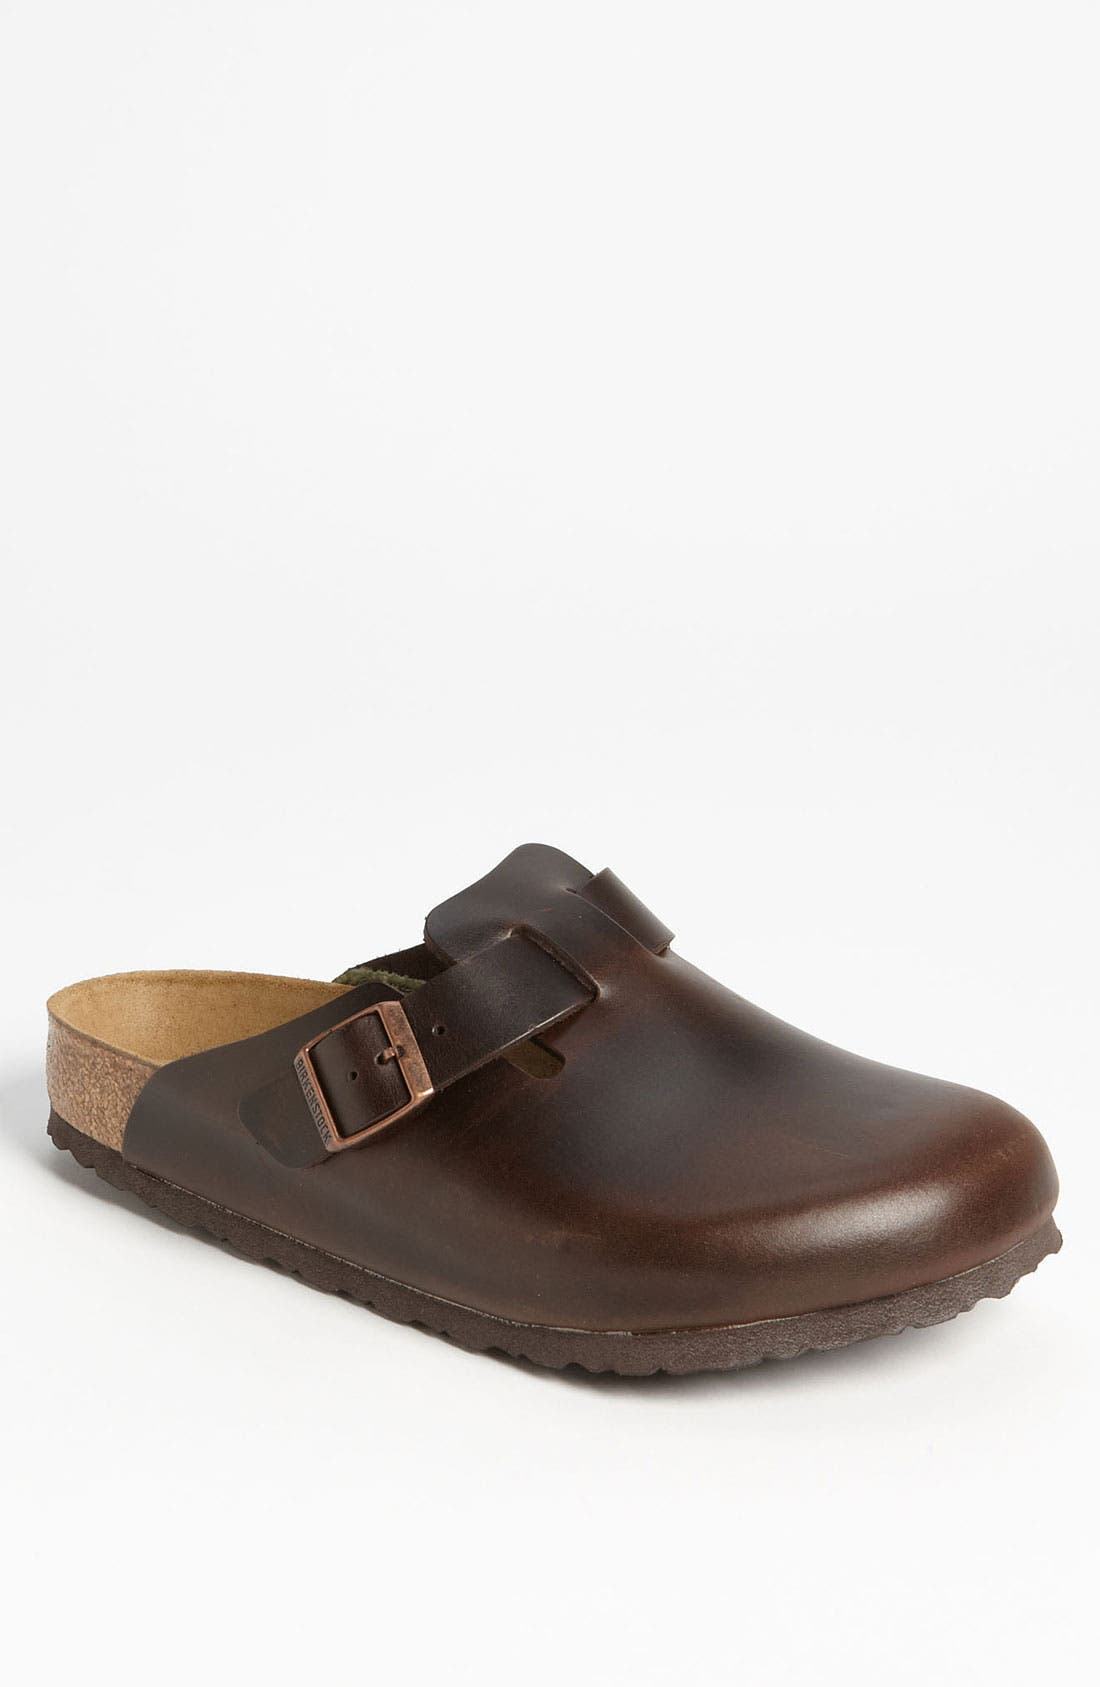 Alternate Image 1 Selected - Birkenstock 'Boston Soft' Clog   (Men)